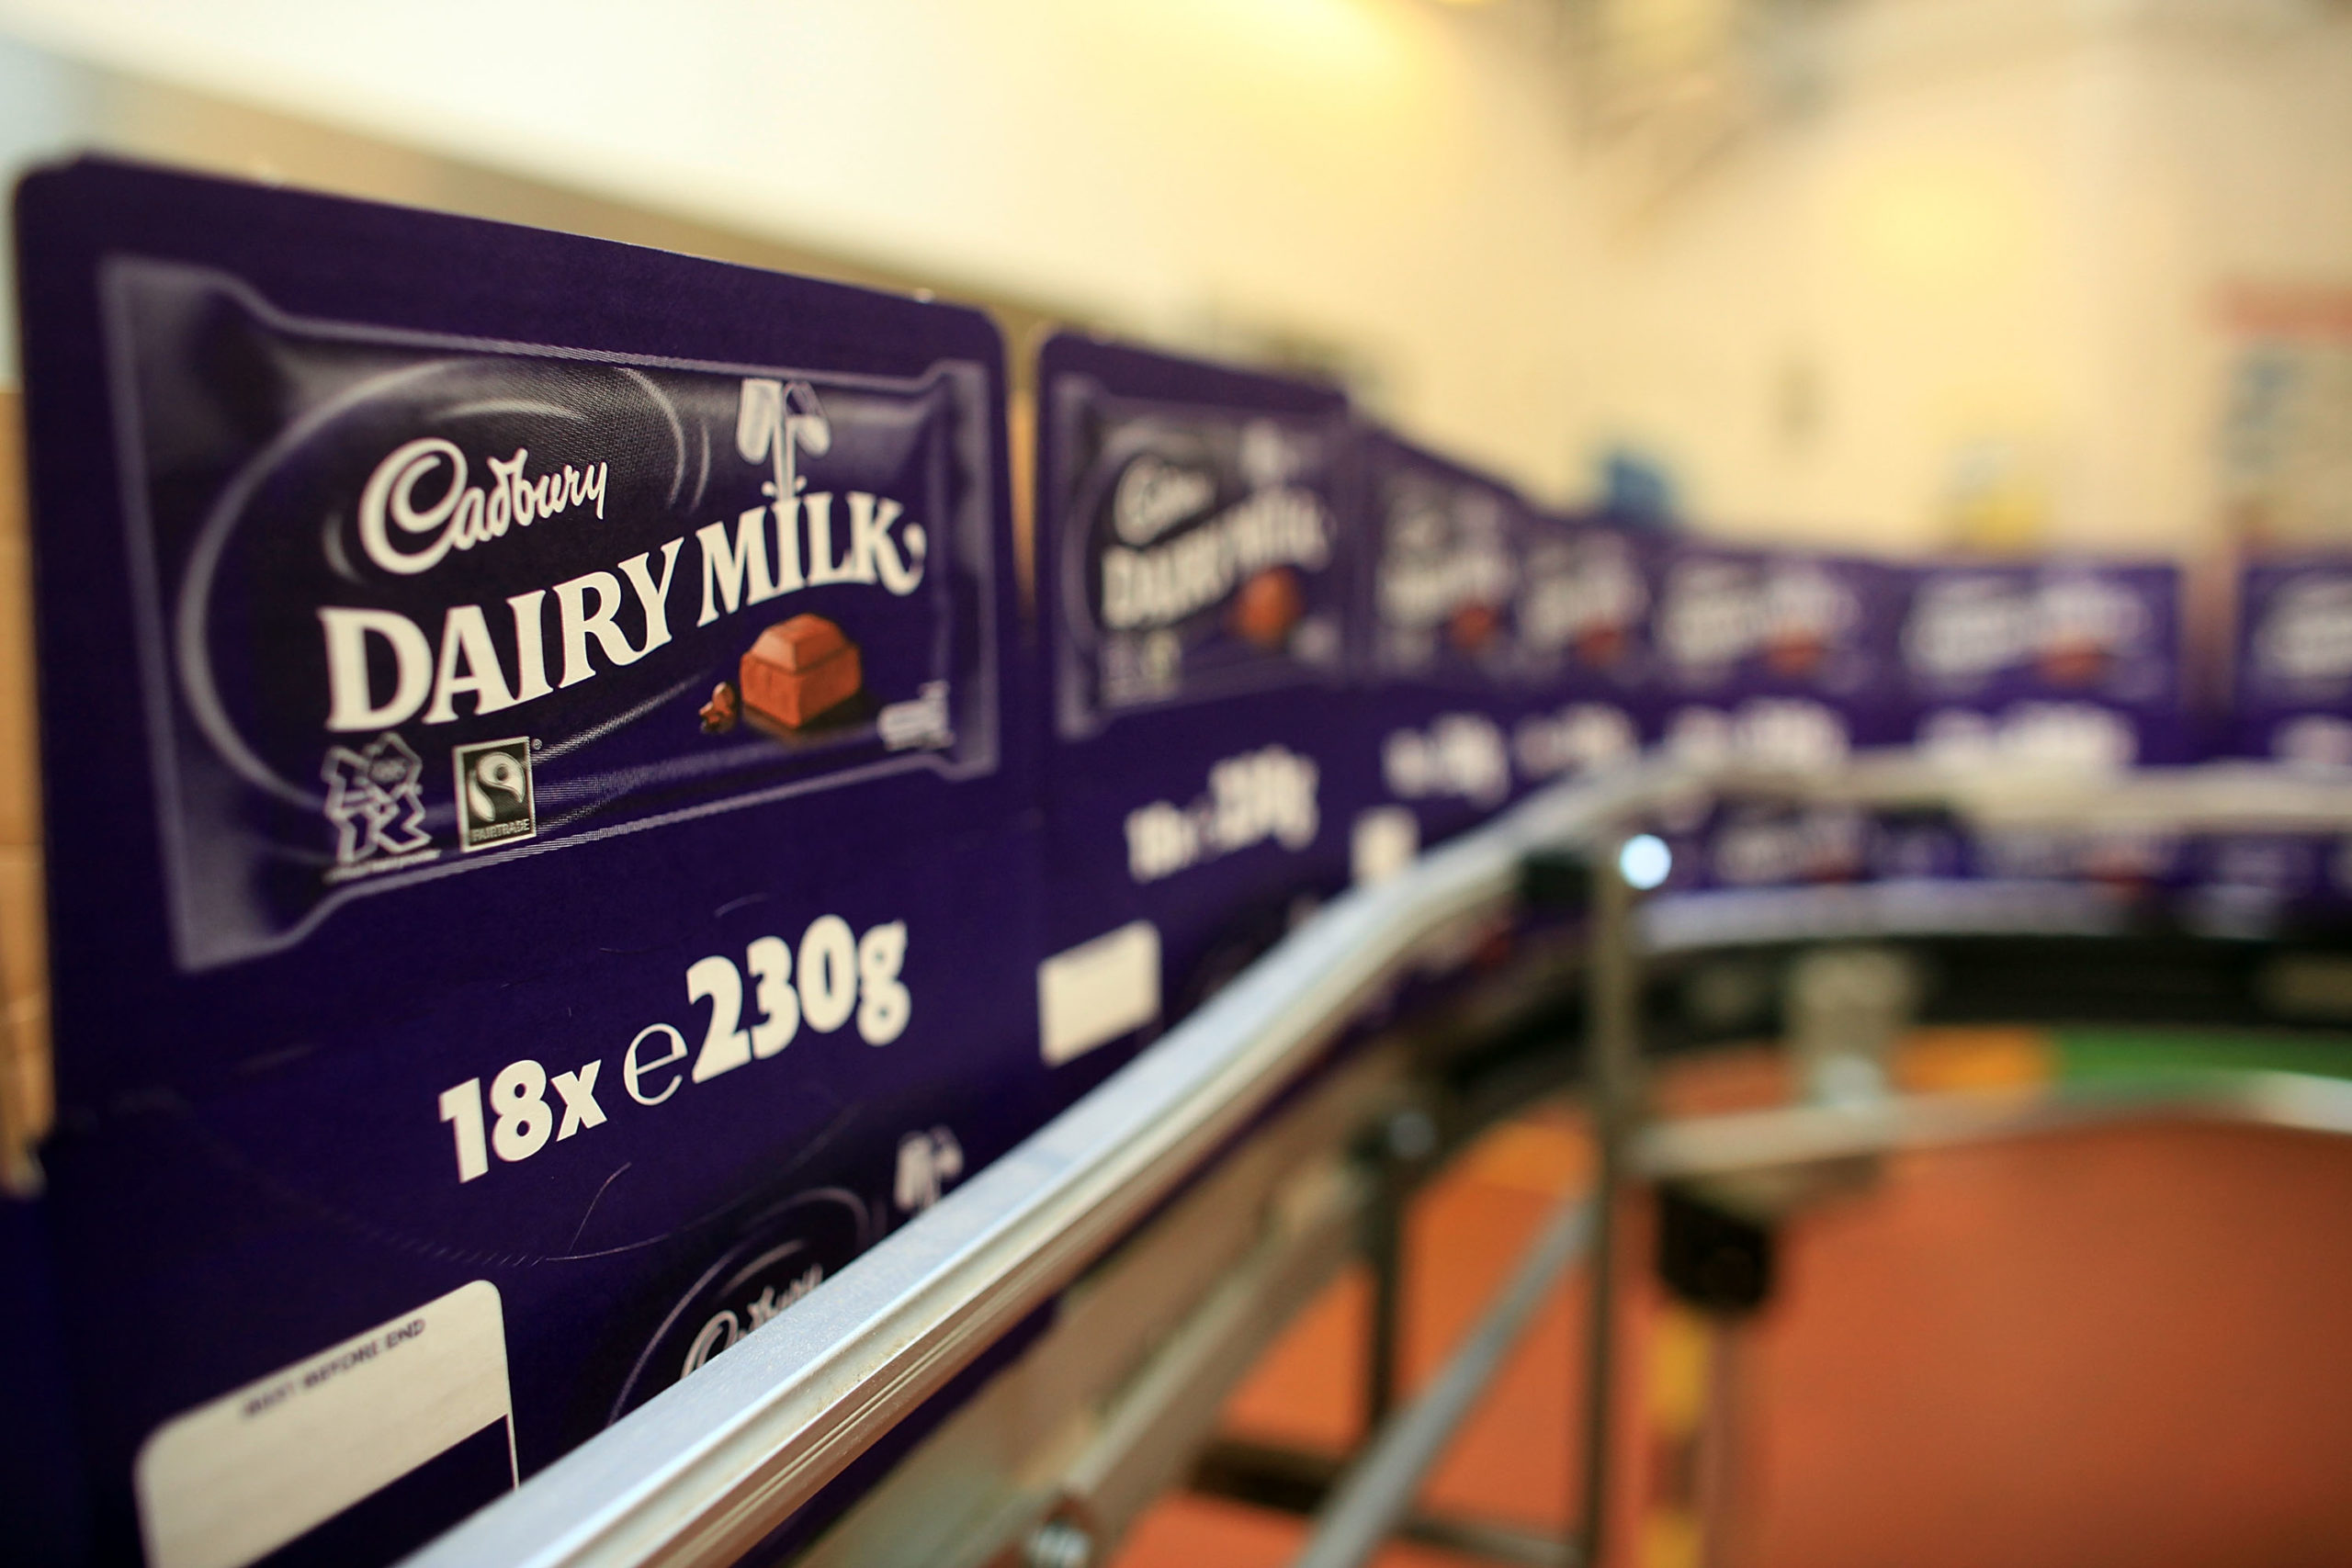 Celtic and Cadbury have collaborated on a special bar